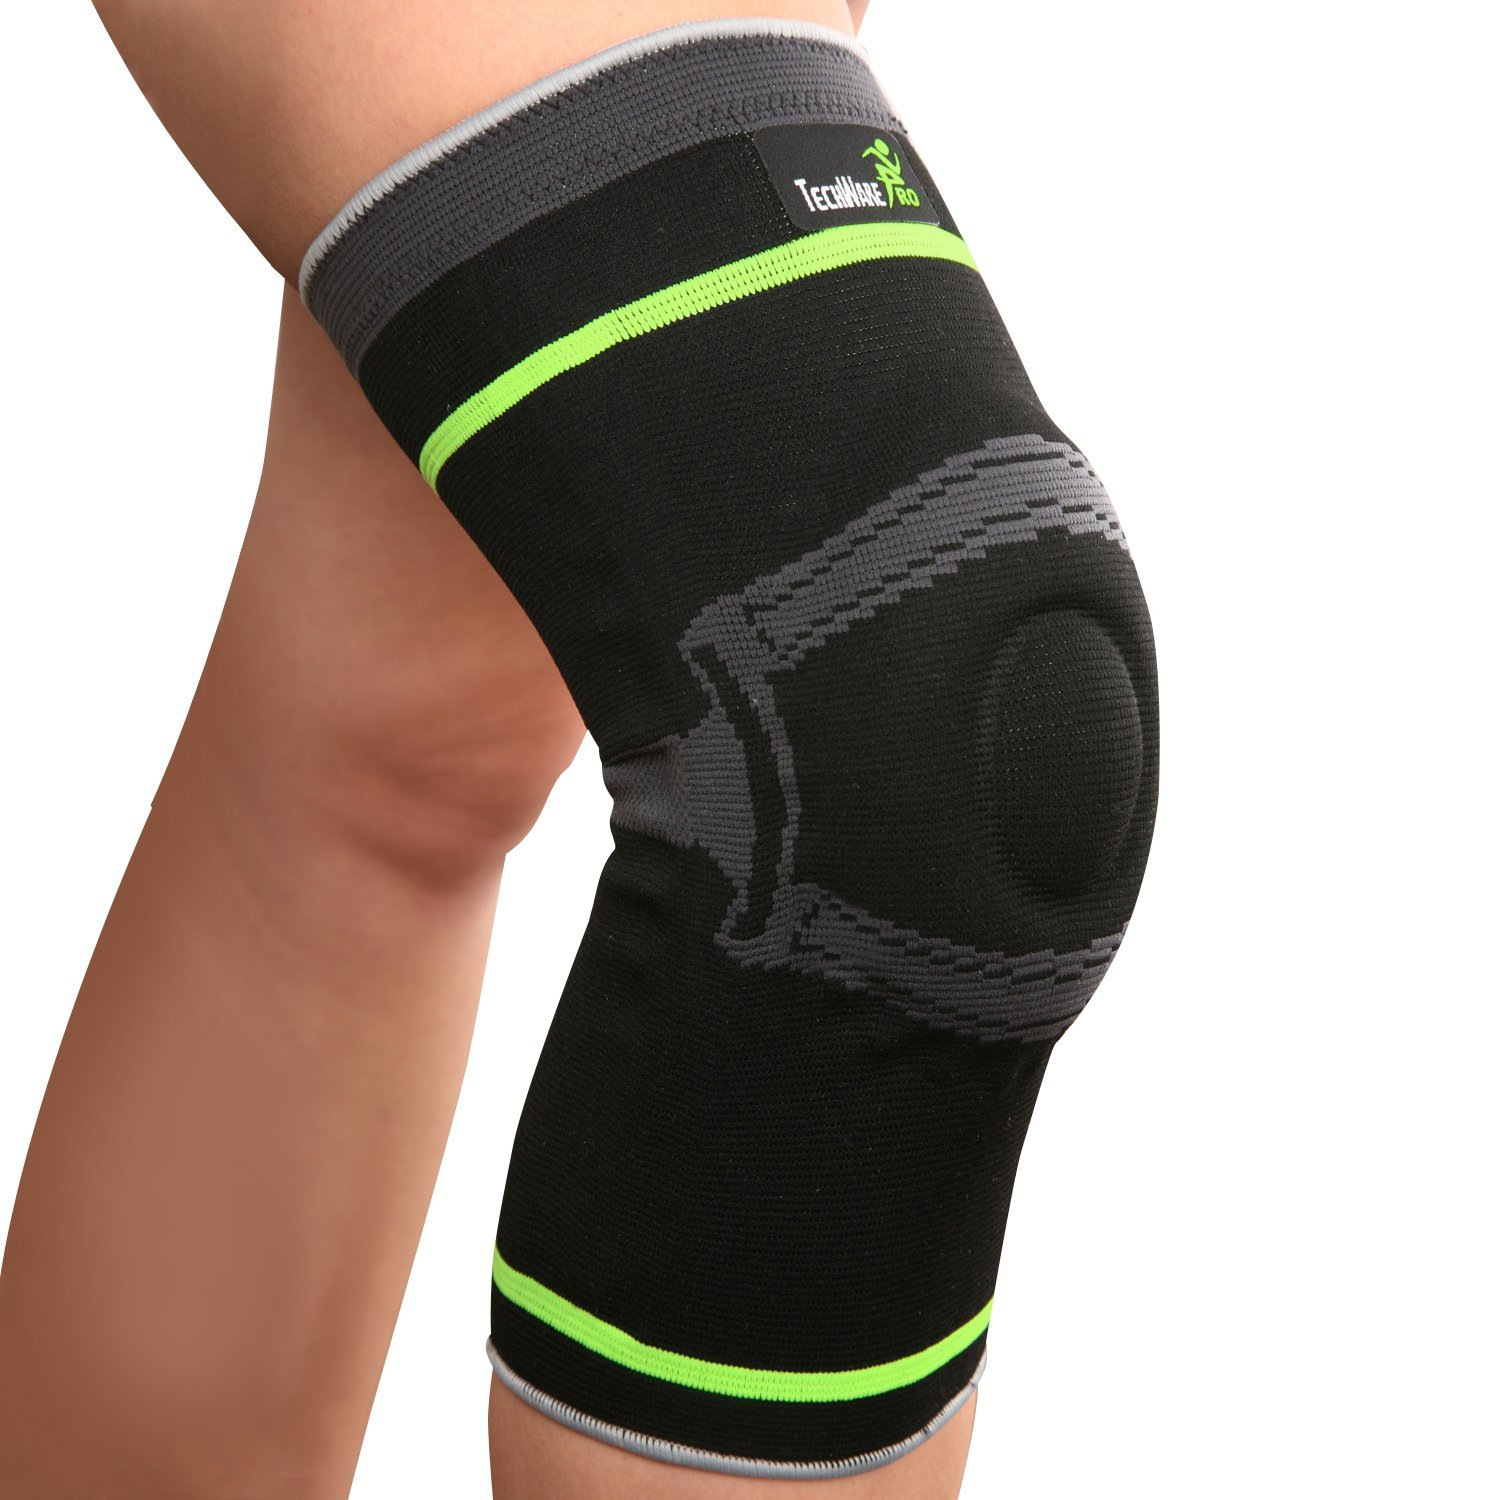 TechWare_Pro_Knee_Compression_Sleeve